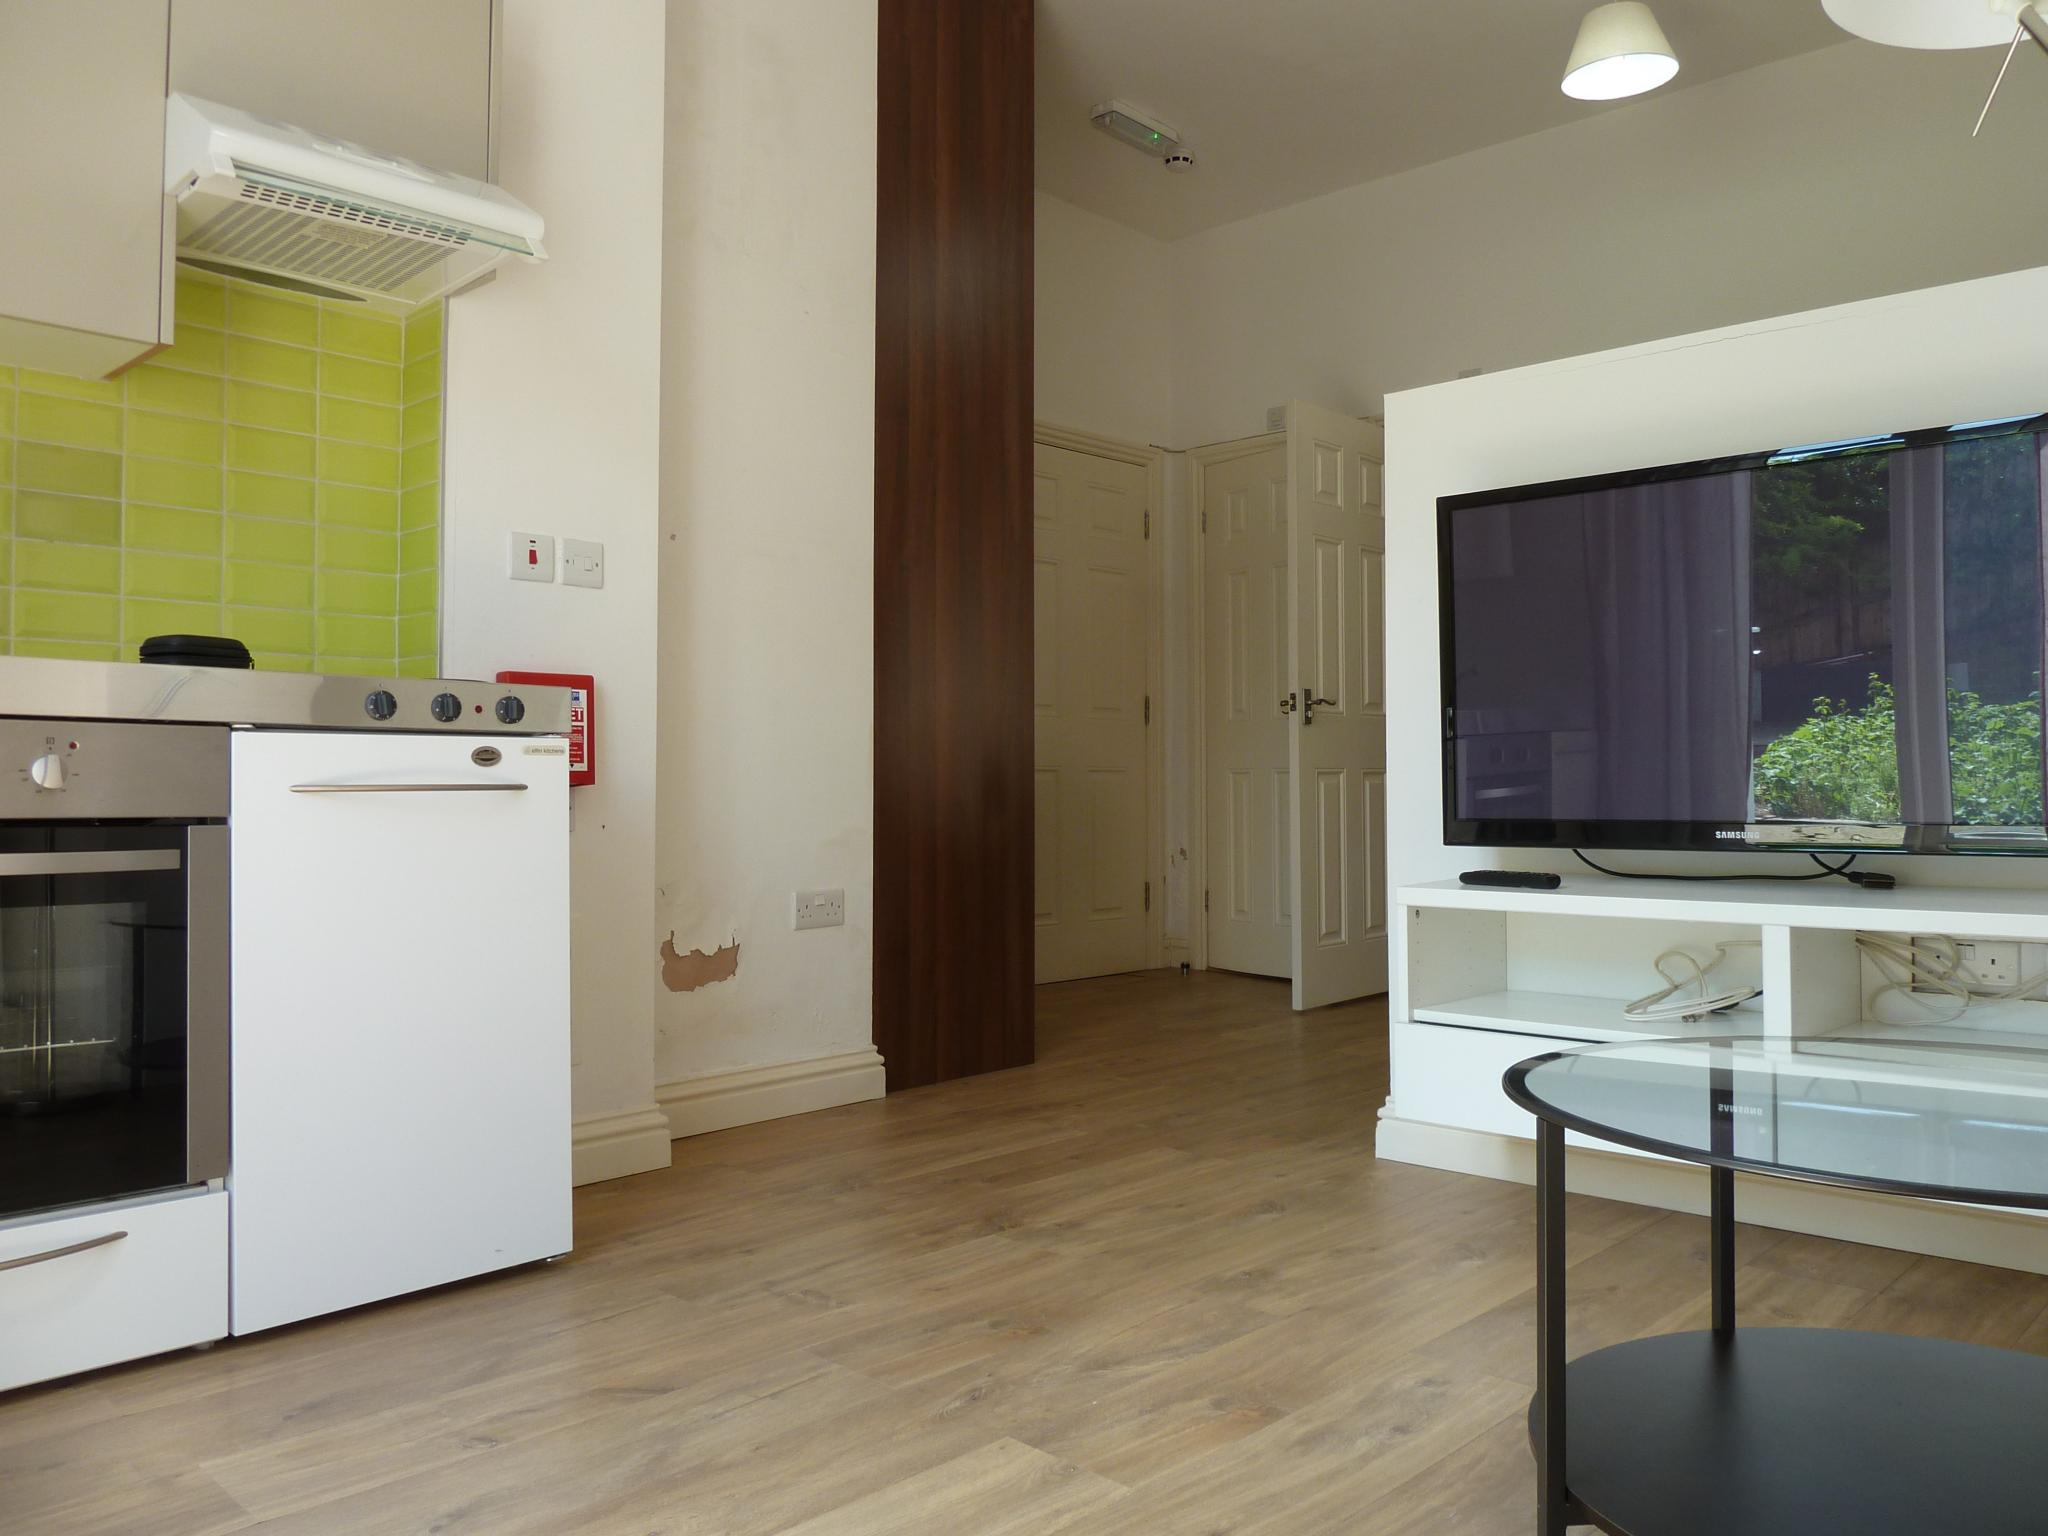 1 bedroom studio flat/apartment To Let in Willesden - LARGE AND SPACIOUS